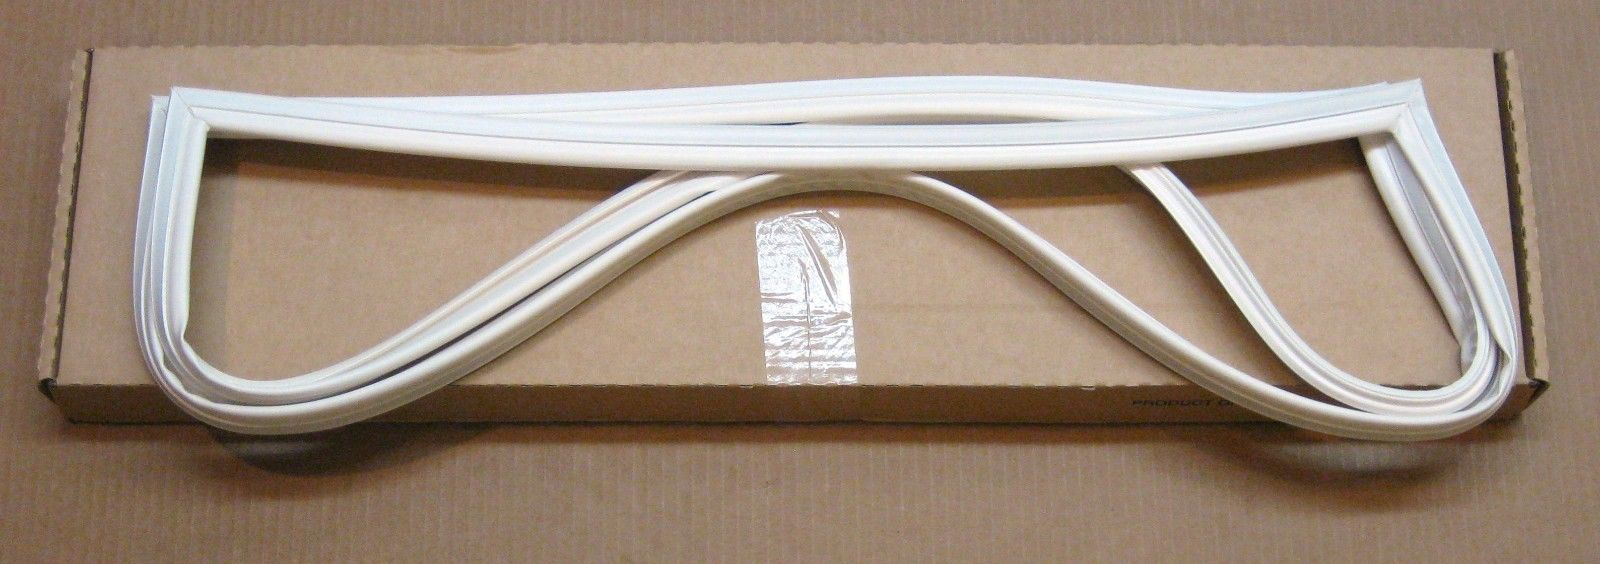 refrigerator door gasket wp2262080 for whirlpool refrigerator door gasket seal 10828